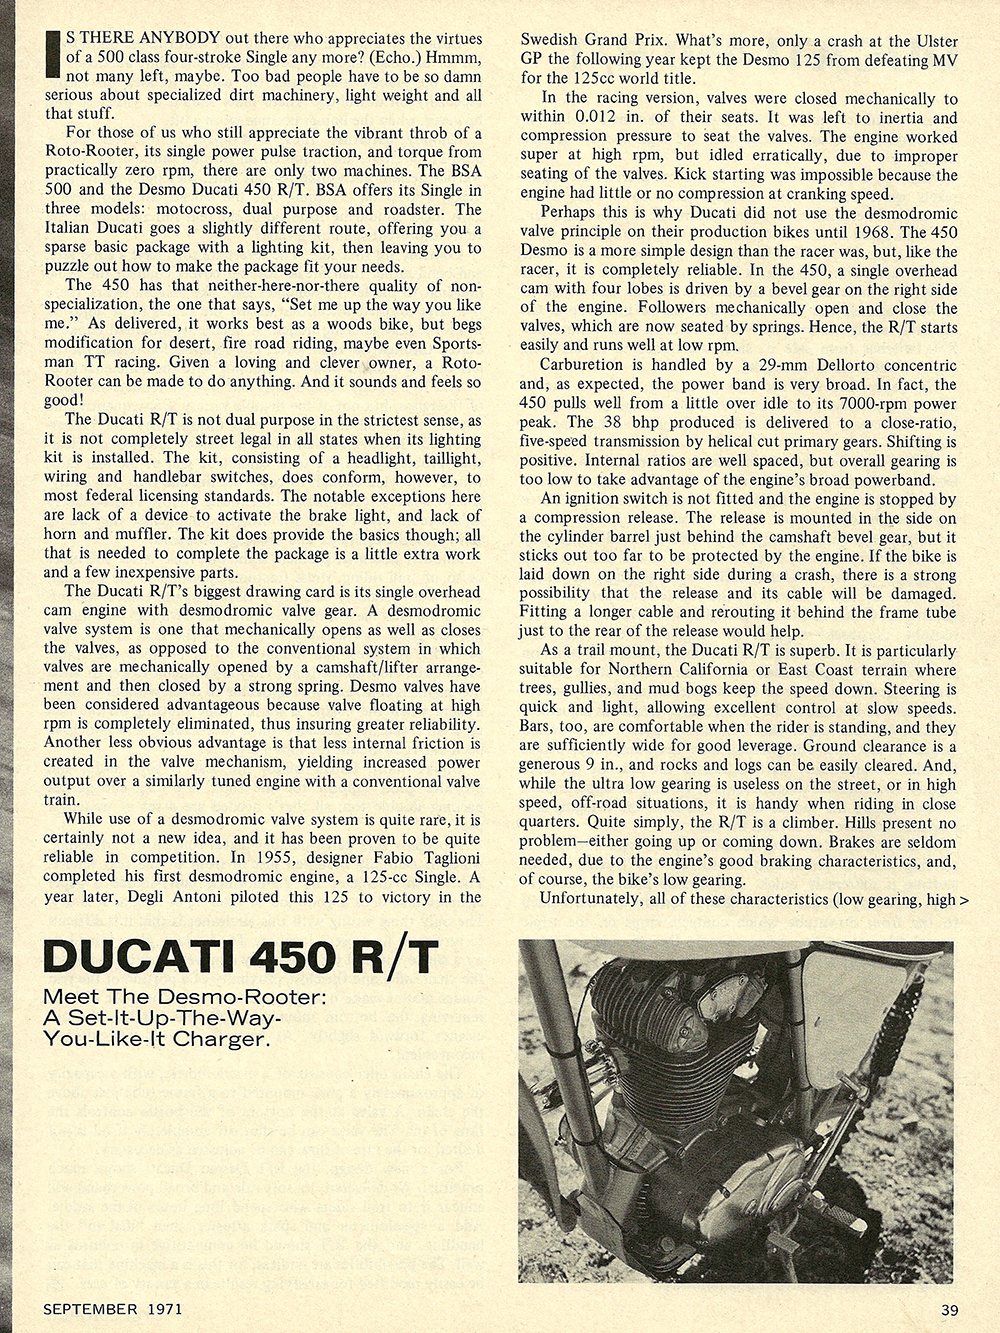 1971 Ducati 450 RT road test 02.jpg